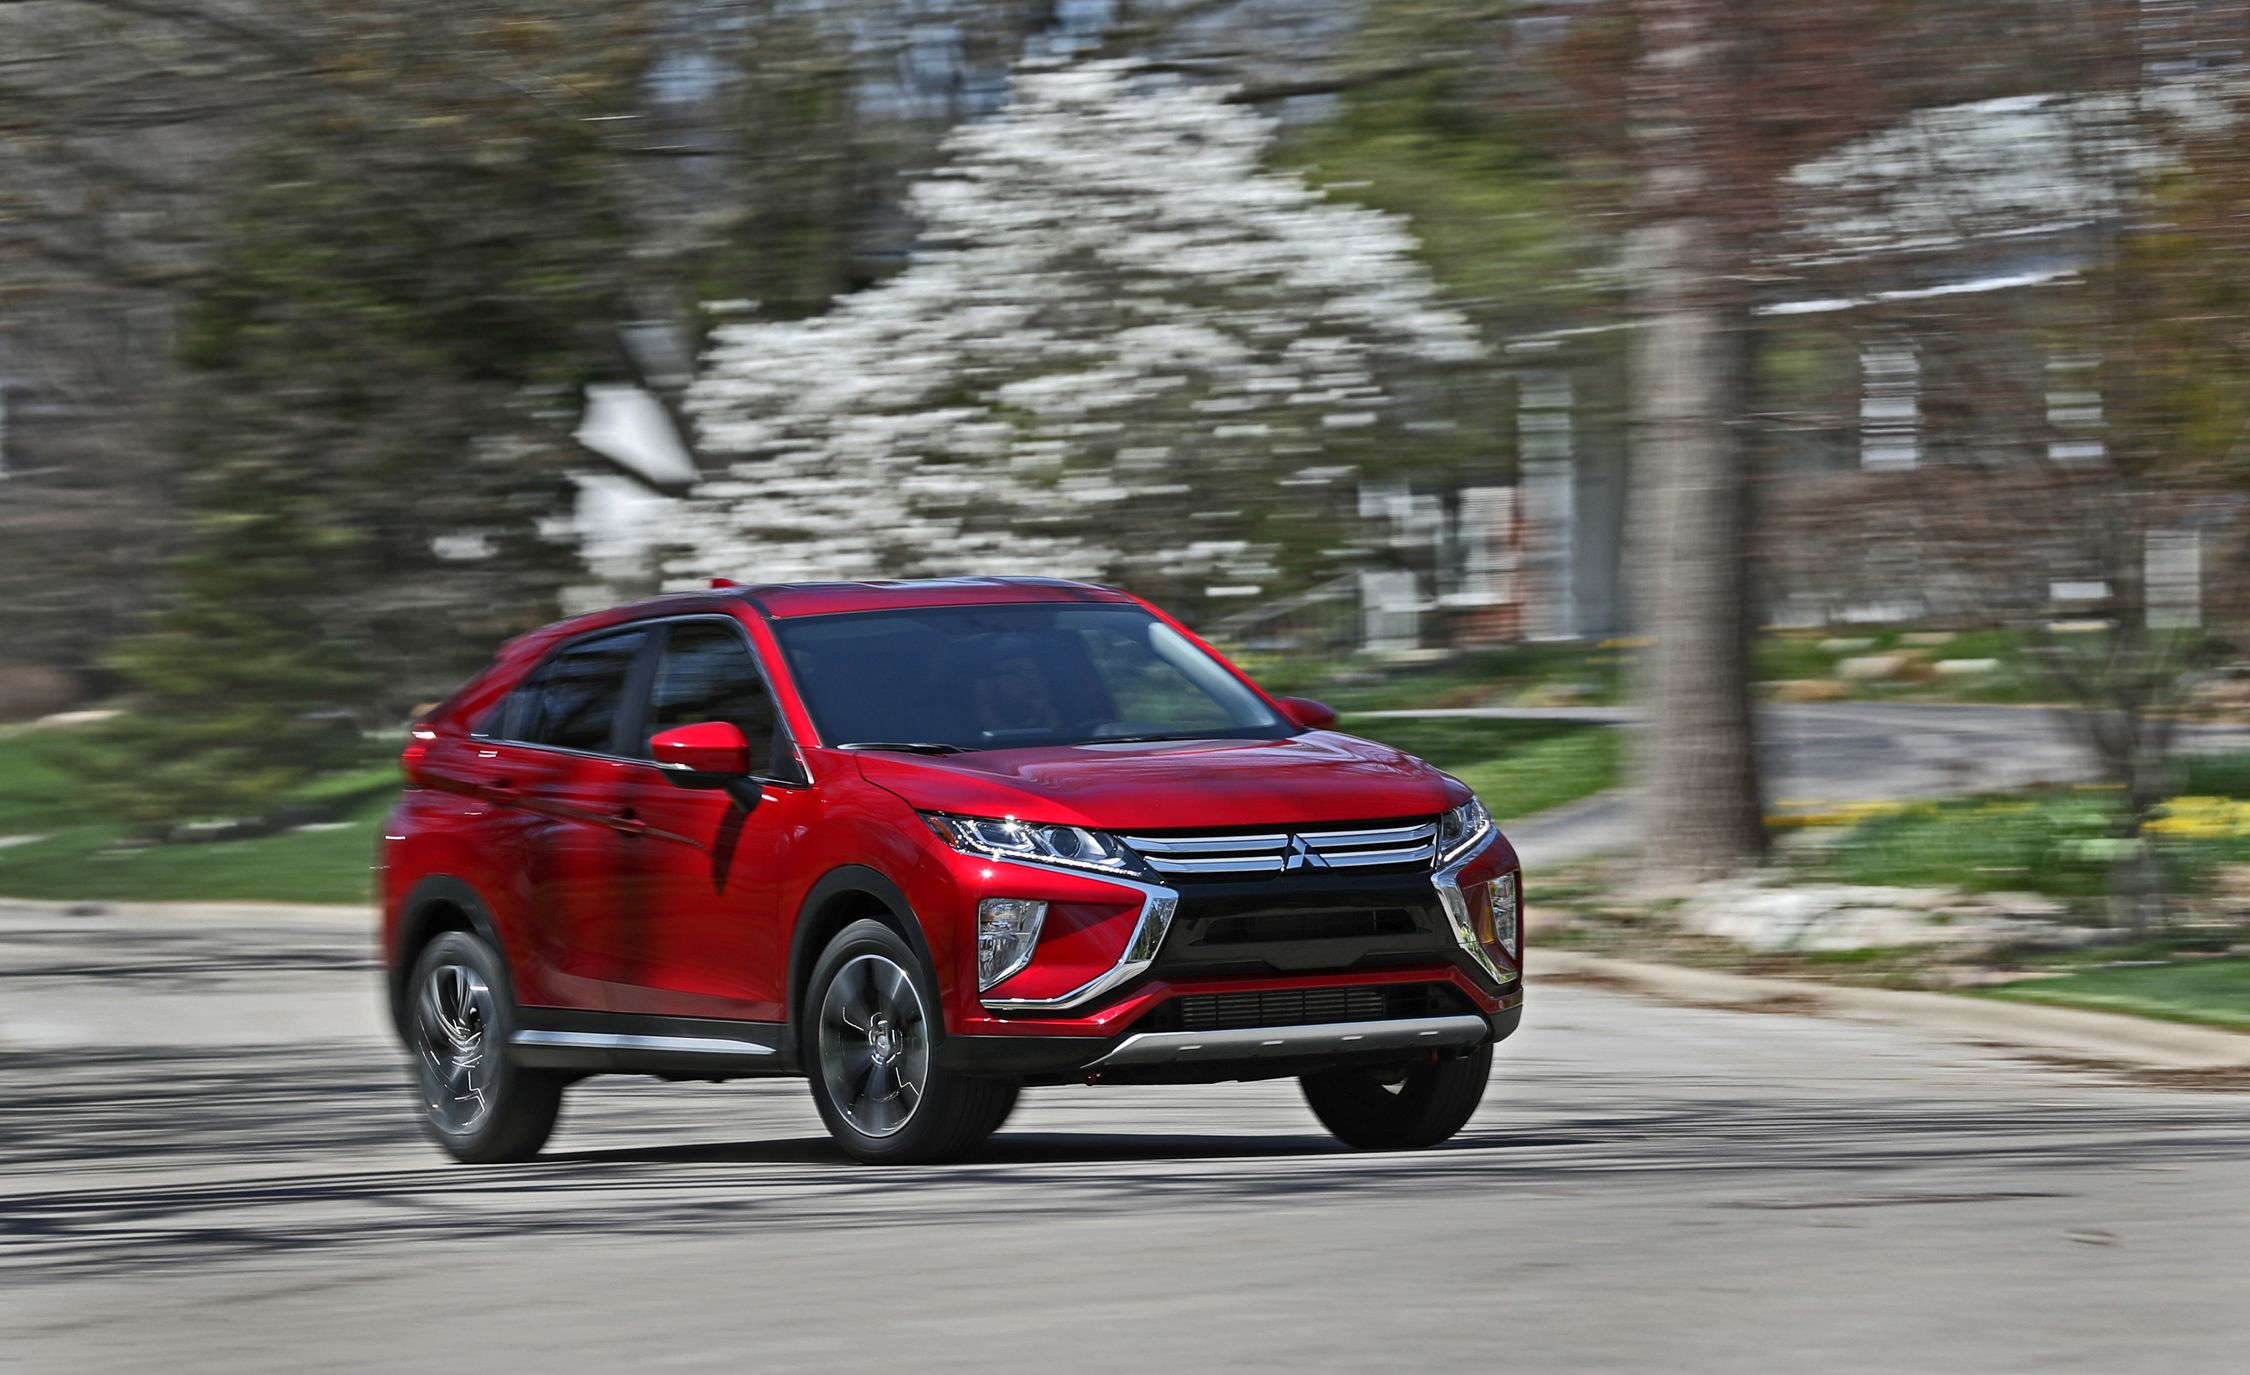 Interieur Mitsubishi Outlander 2019 Mitsubishi Eclipse Cross Reviews Mitsubishi Eclipse Cross